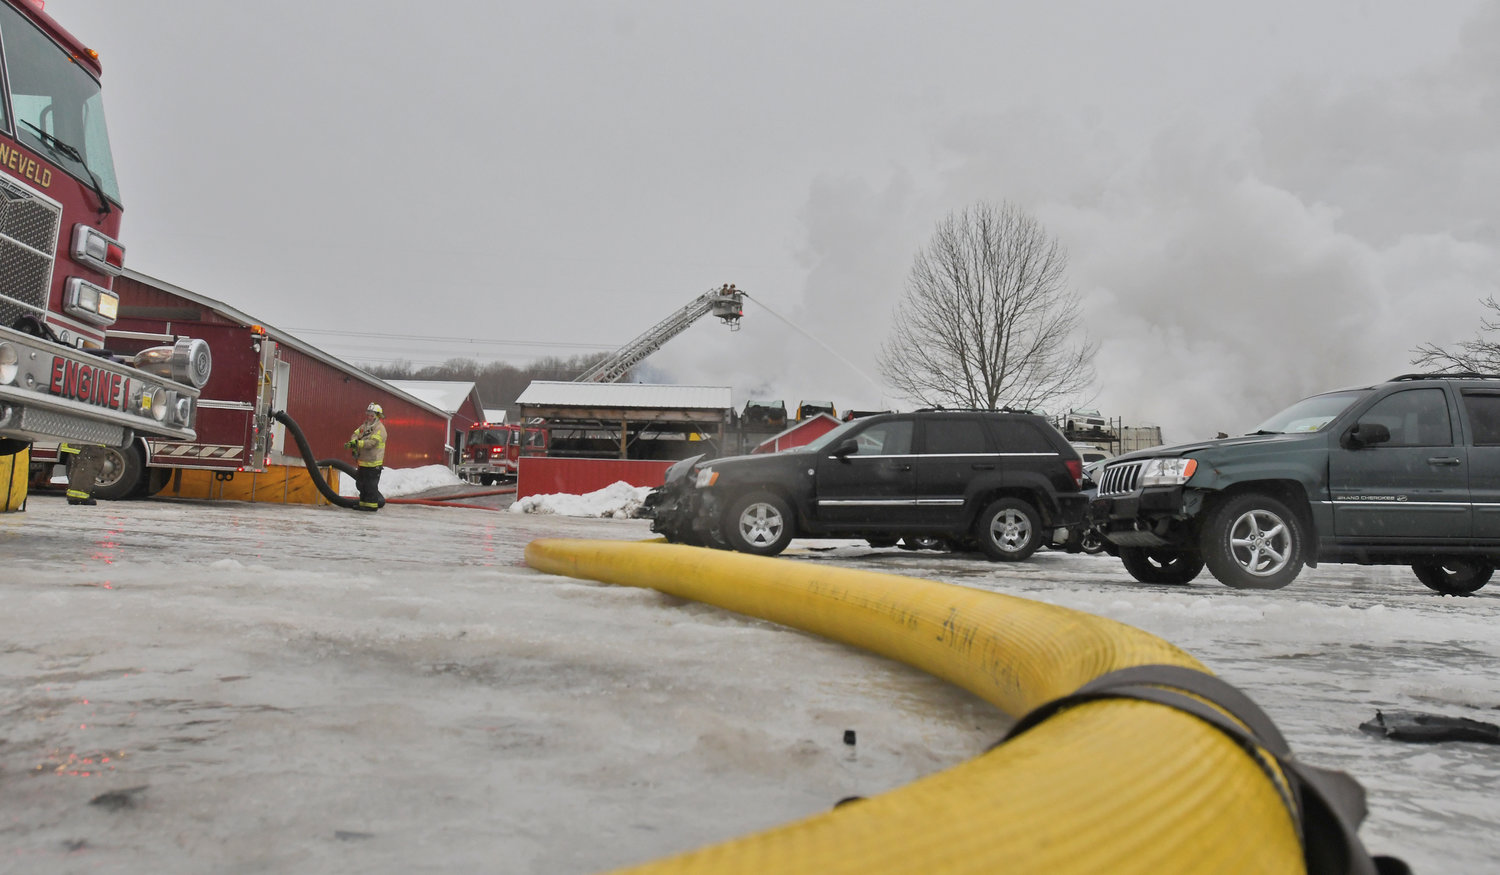 WATER EVERYWHERE — Firefighters fill up a portable pond at the scene of a large fire at Tolpa's Auto Parts on French Road in Steuben this afternoon. Water had to be tankered to the scene from multiple fill sites, while crews also slogged through freezing rain.